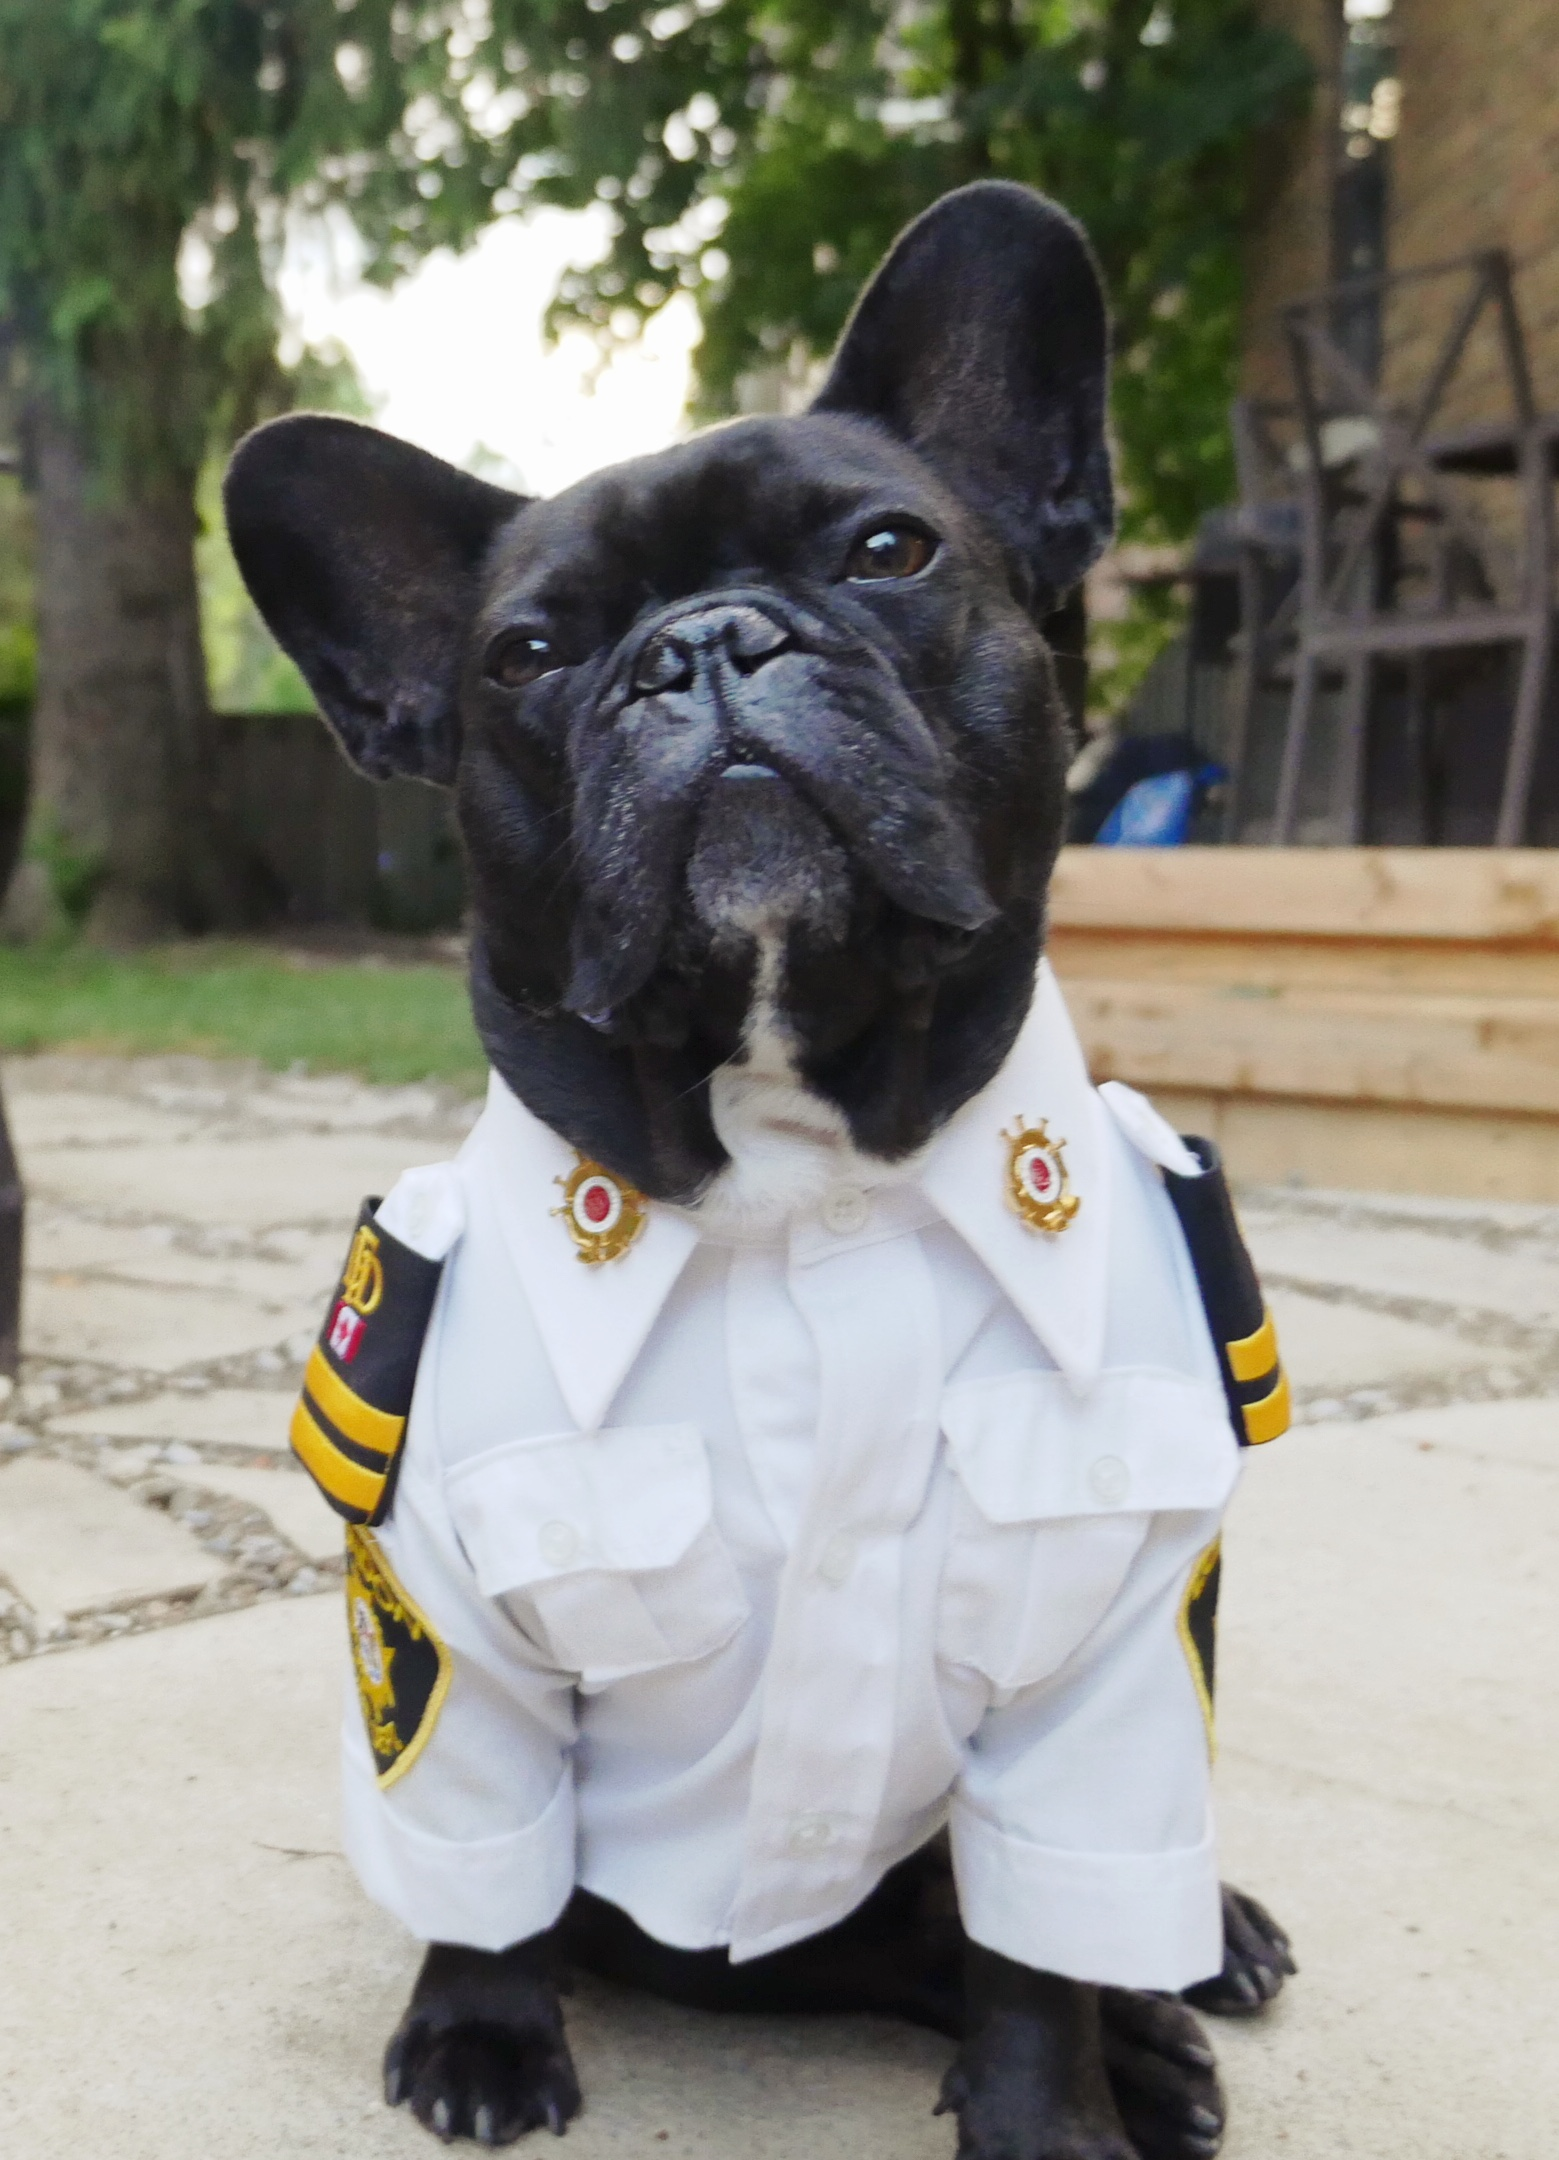 Assistant Fire Chief and Fire Safety Dog, Archie Brindleton